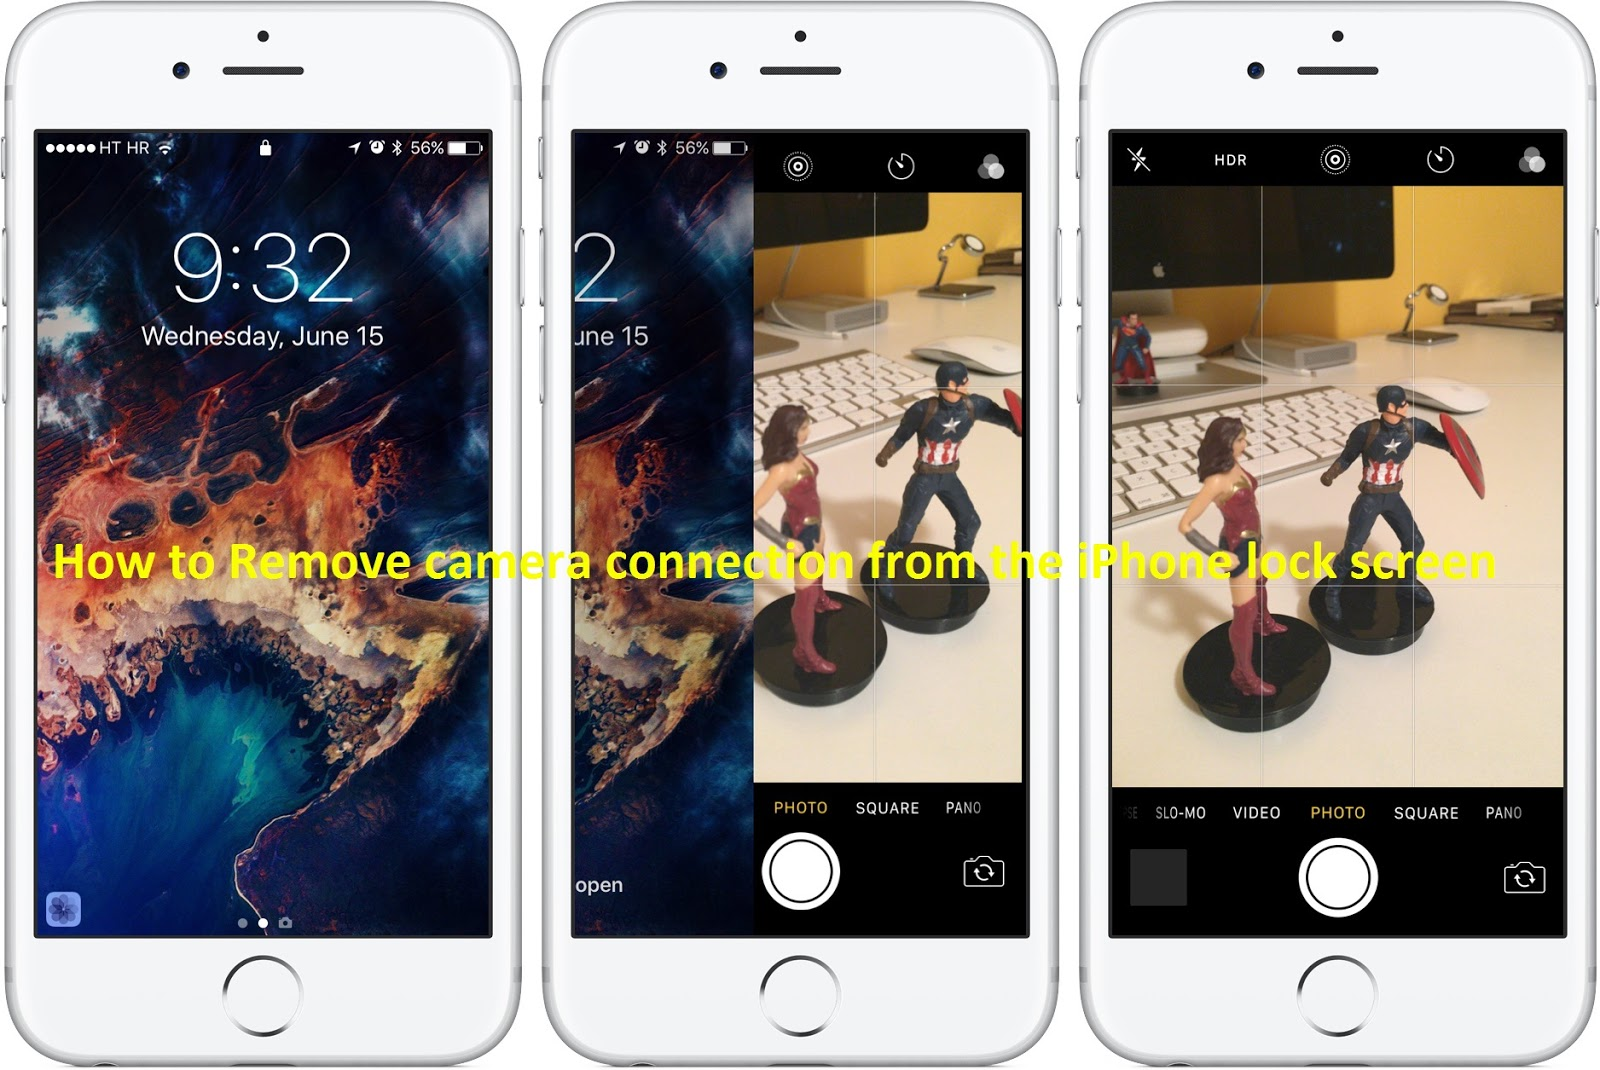 How to Remove camera connection from the iPhone lock screen - Tech